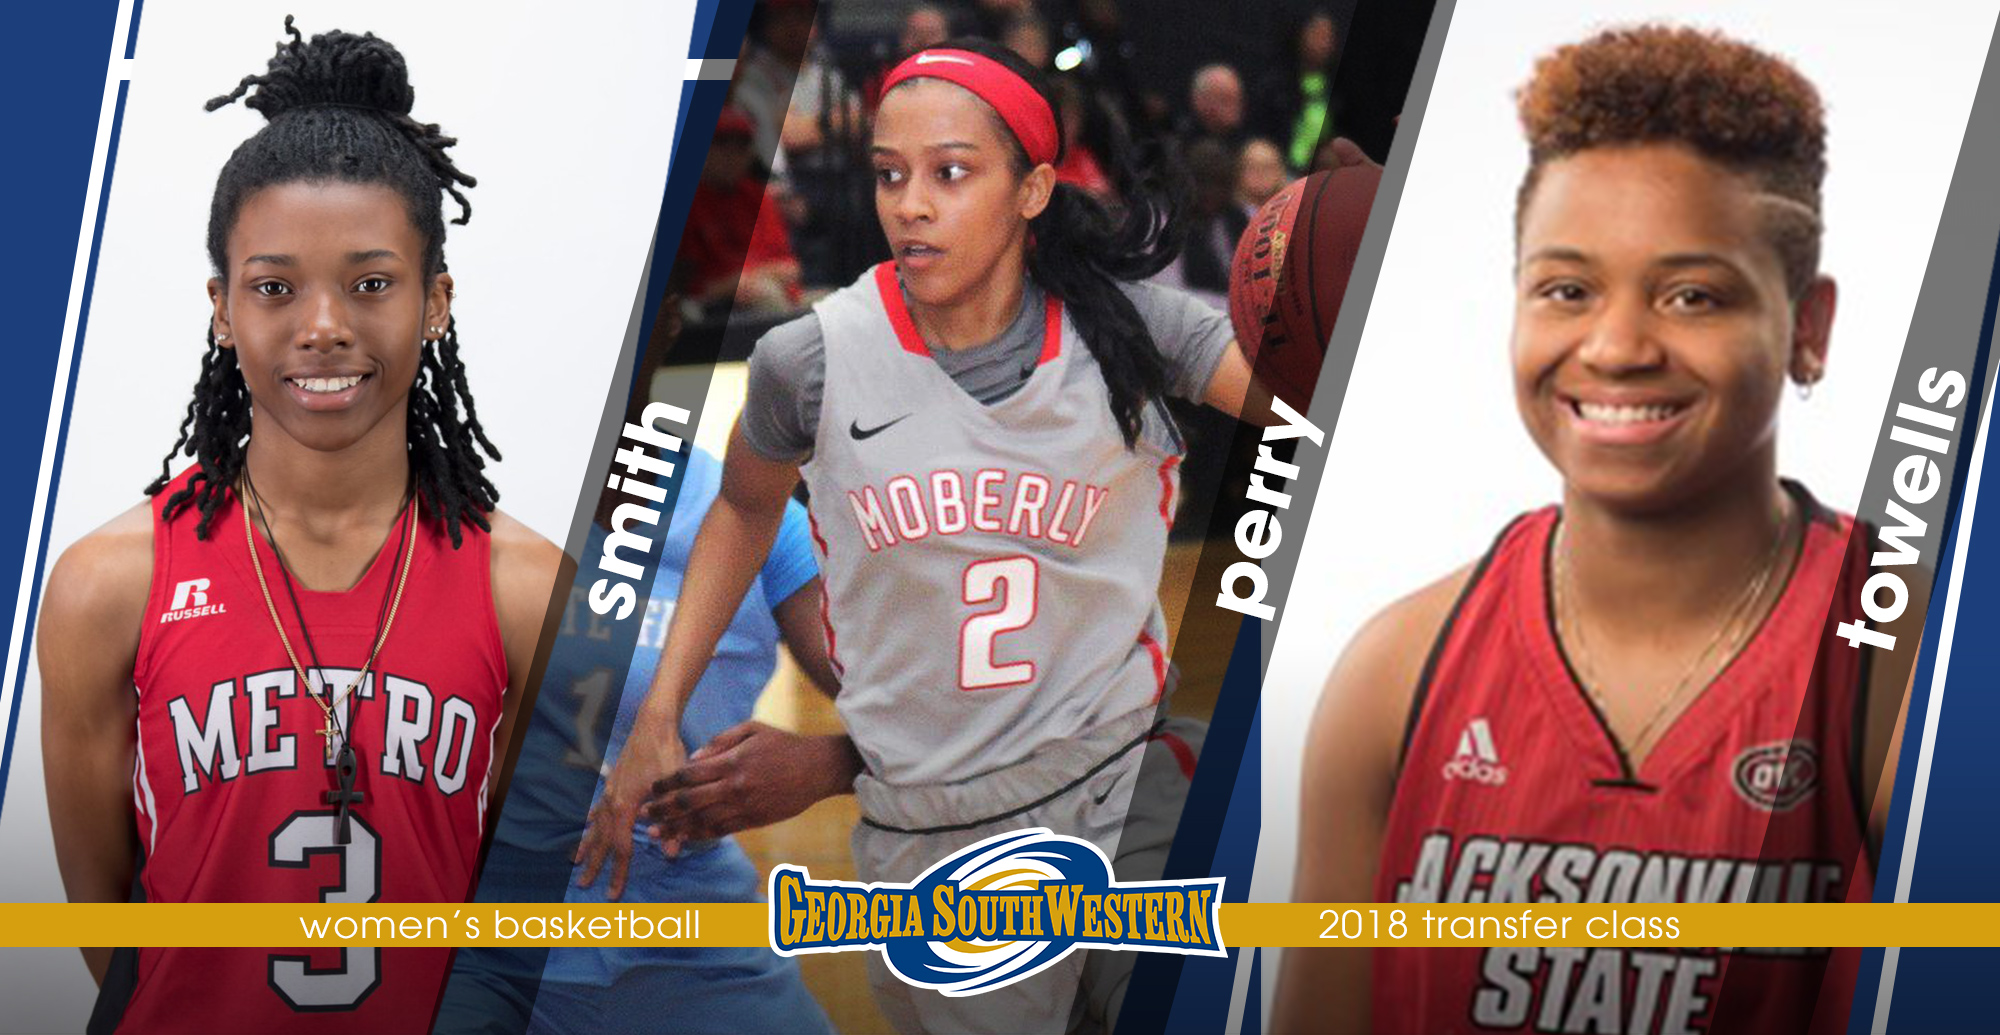 This year's transfer class includes Kayla Smith, Brianna Perry and Morgan Towells.